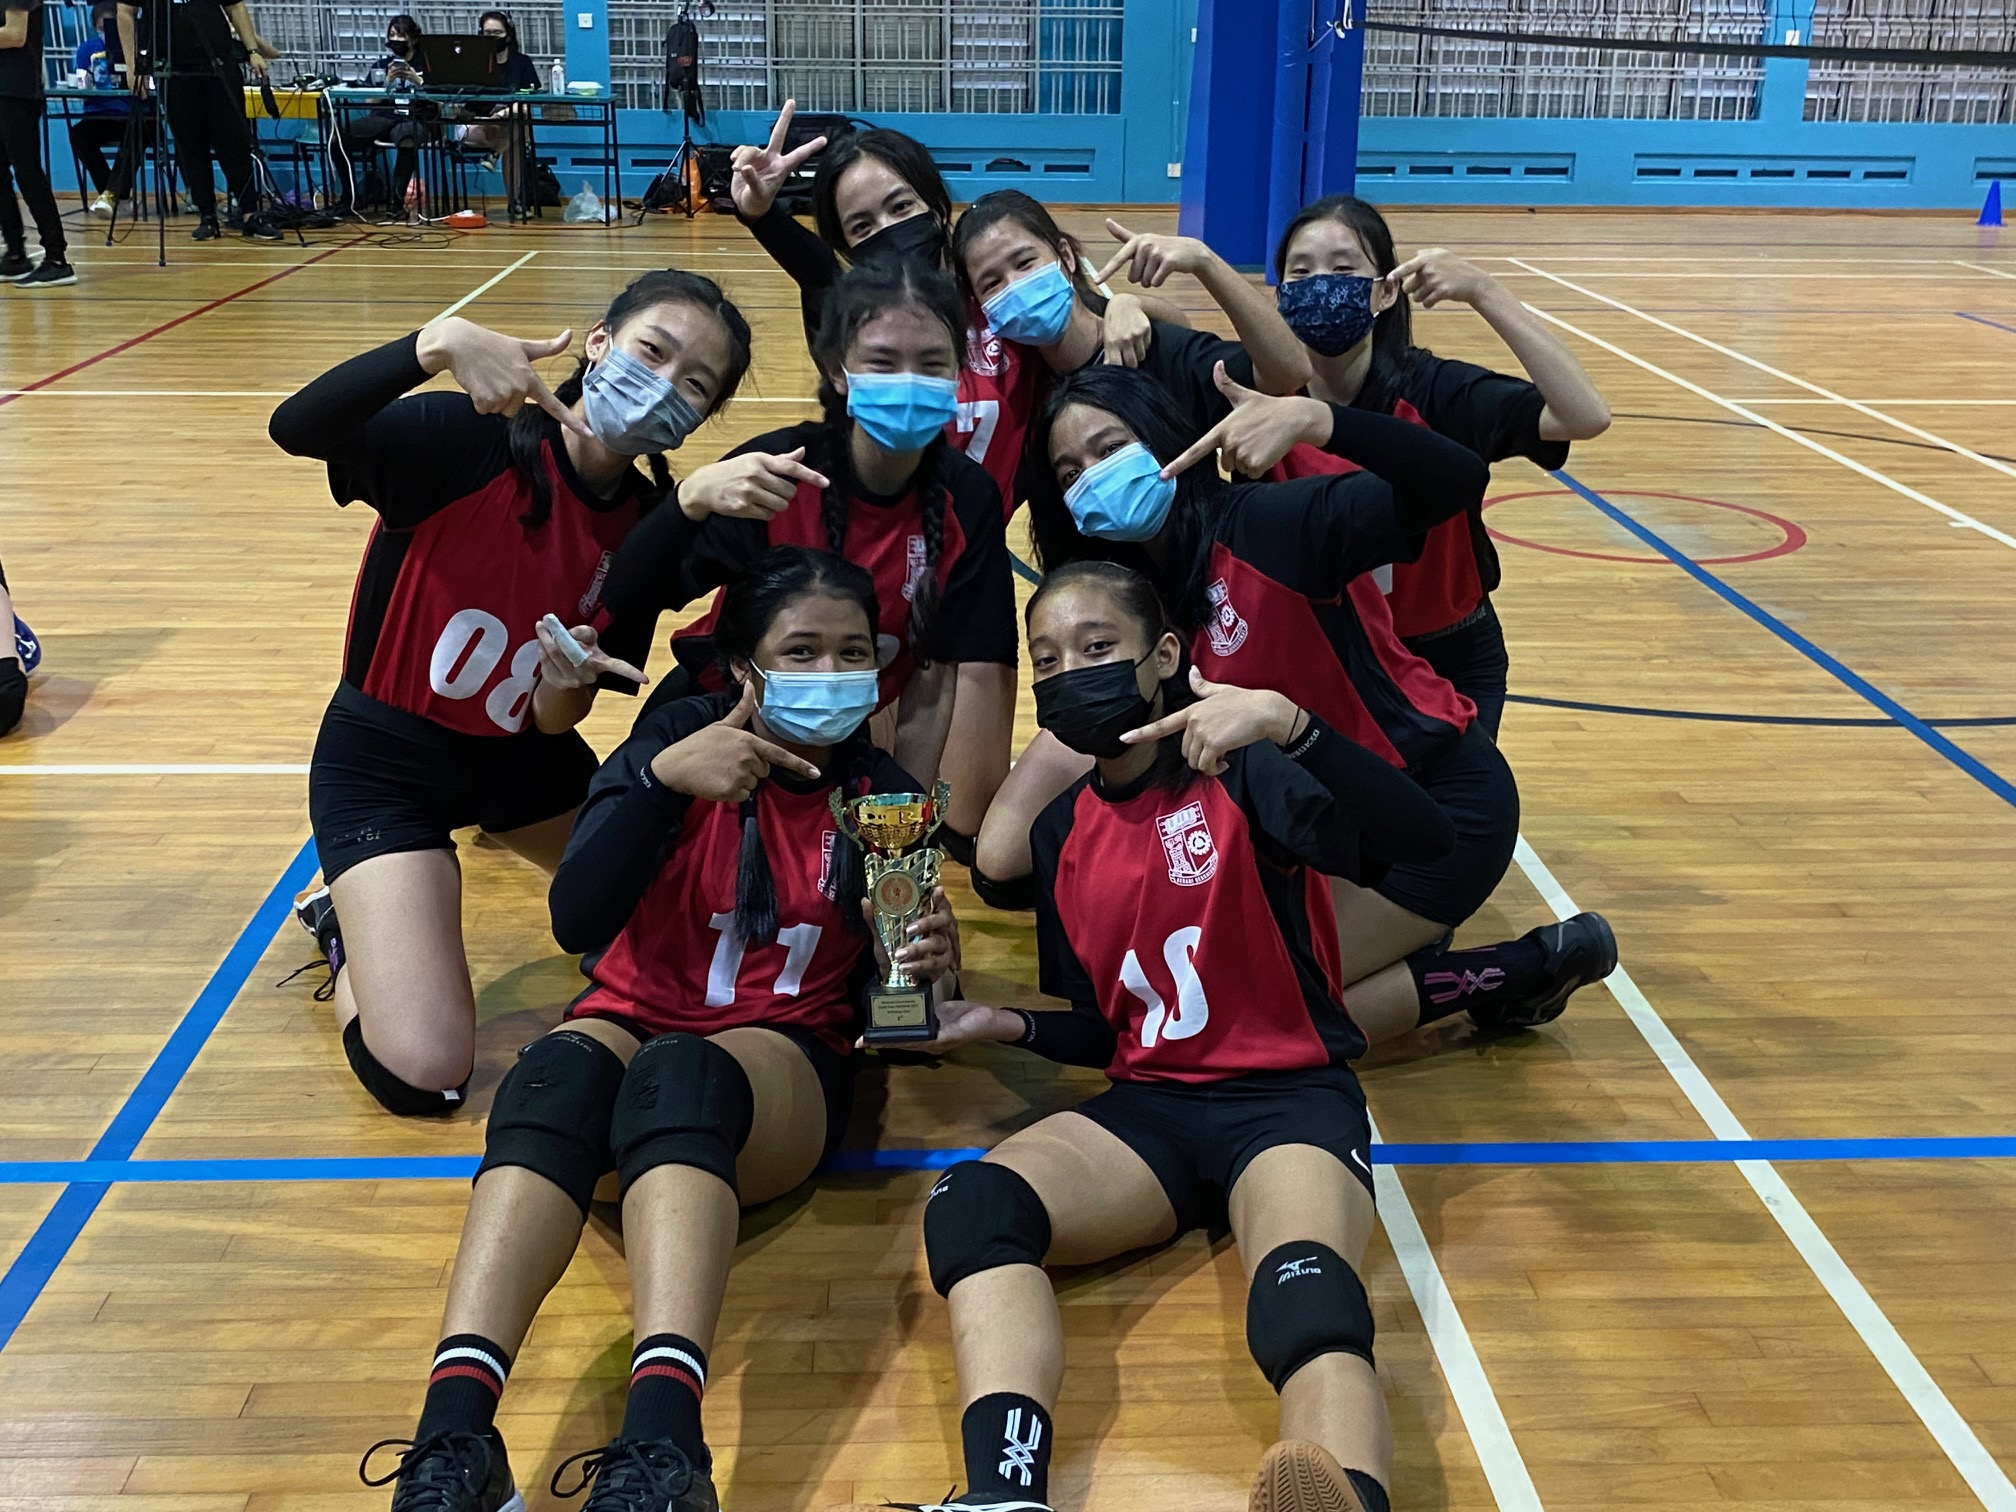 NSG South Zone B Div girls volleyball final - Queenstown (red)